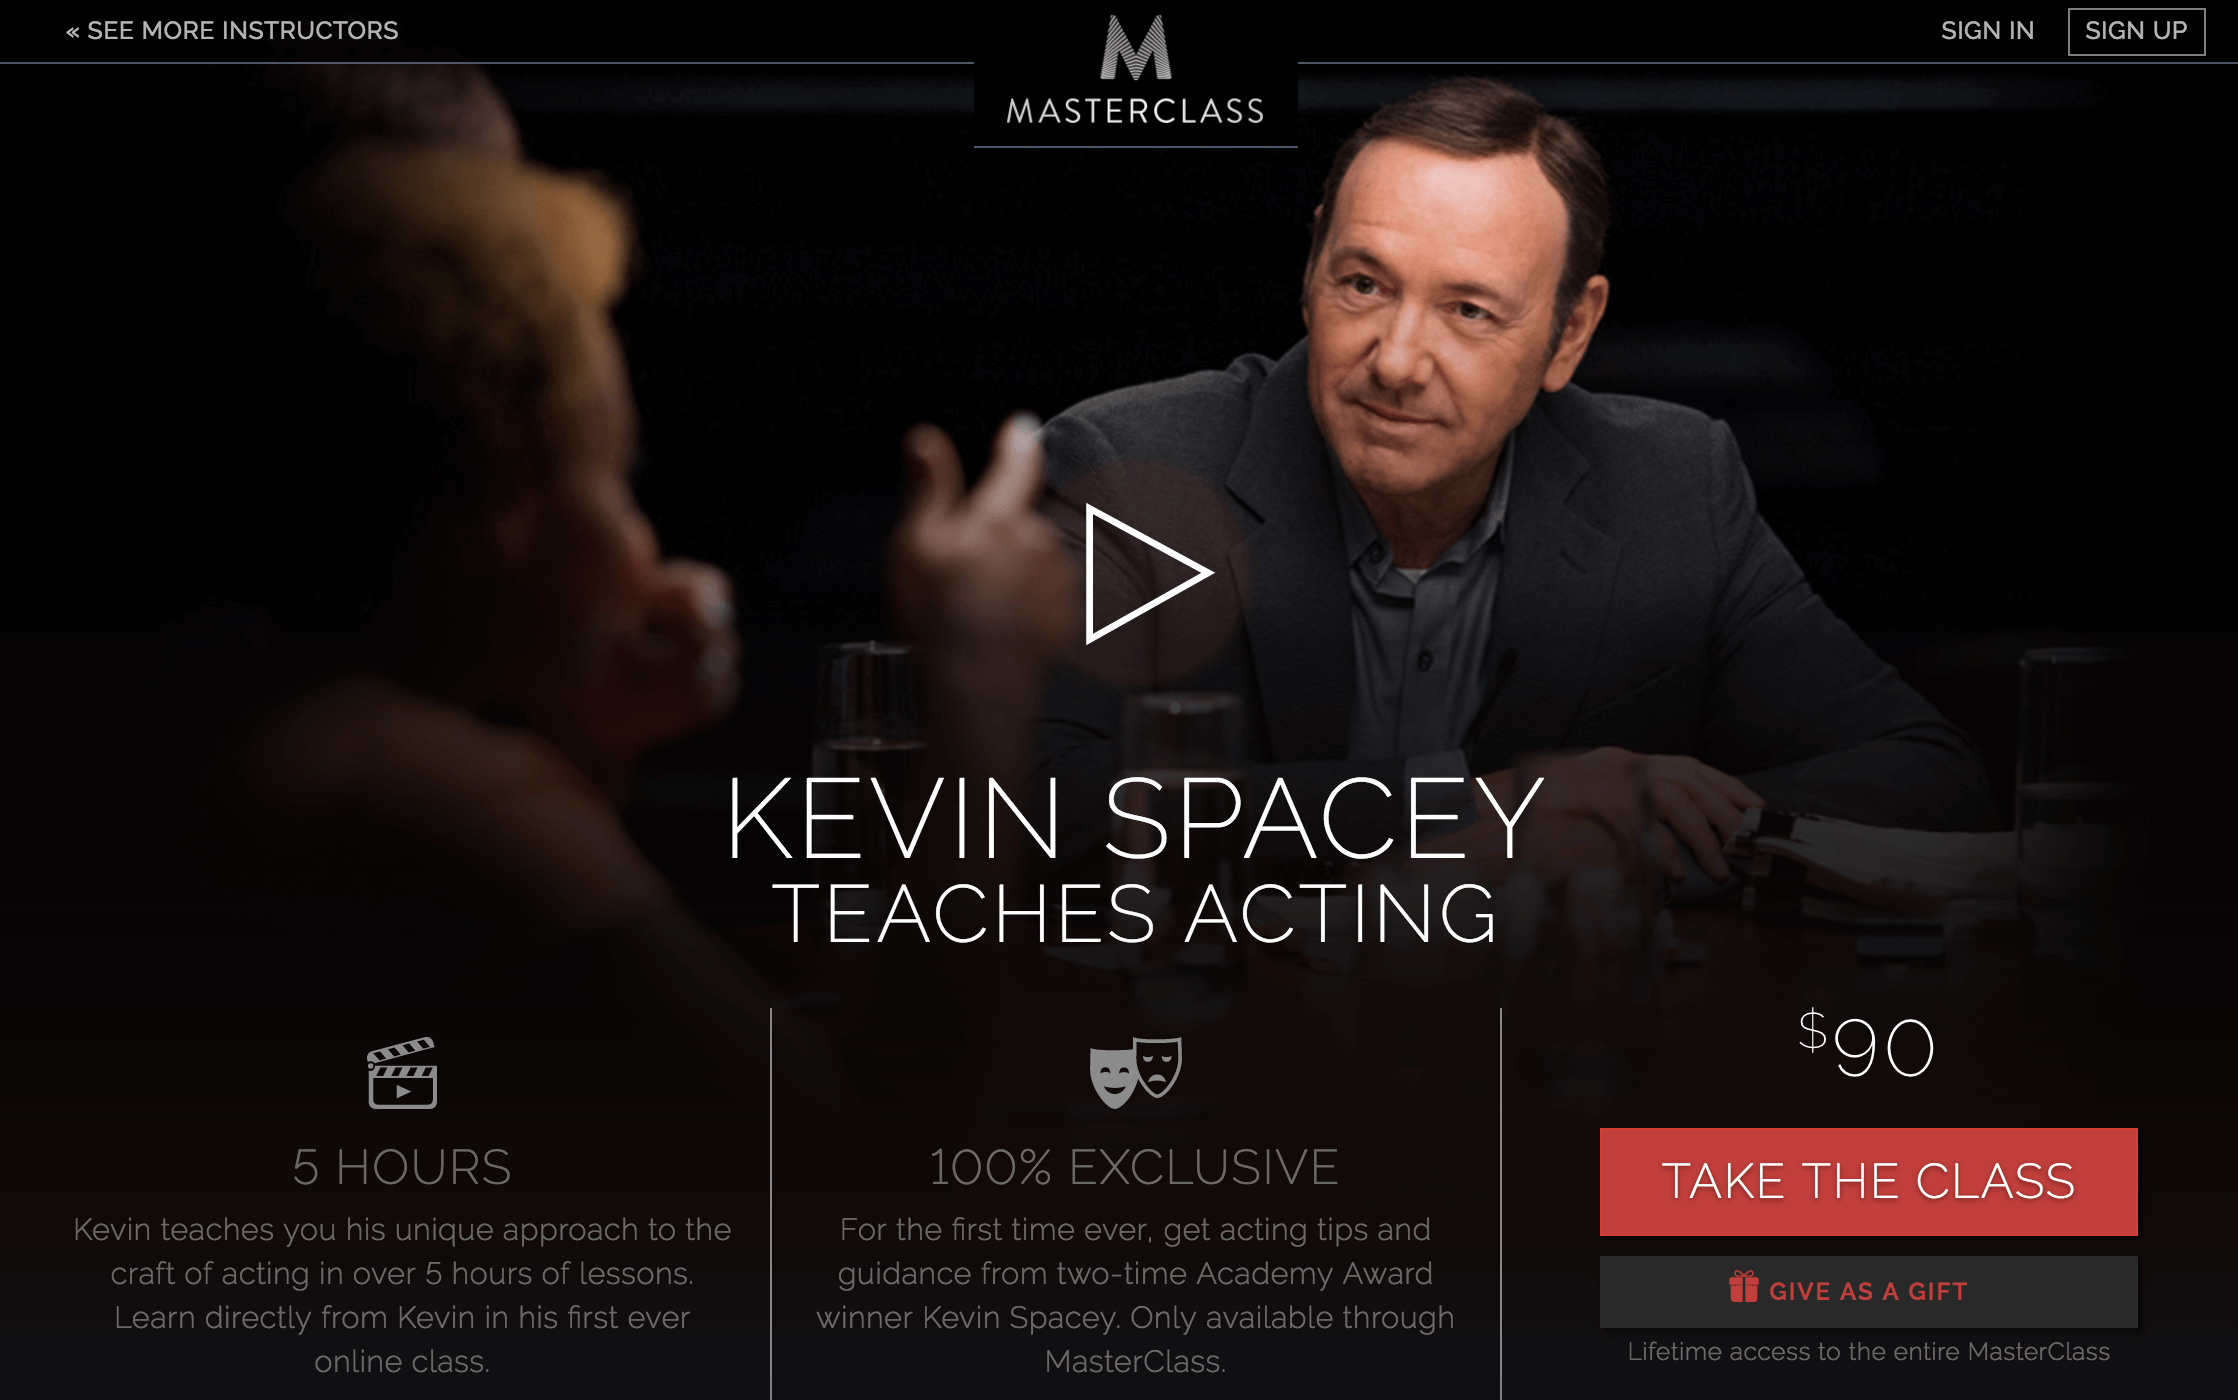 kevin spacey teach